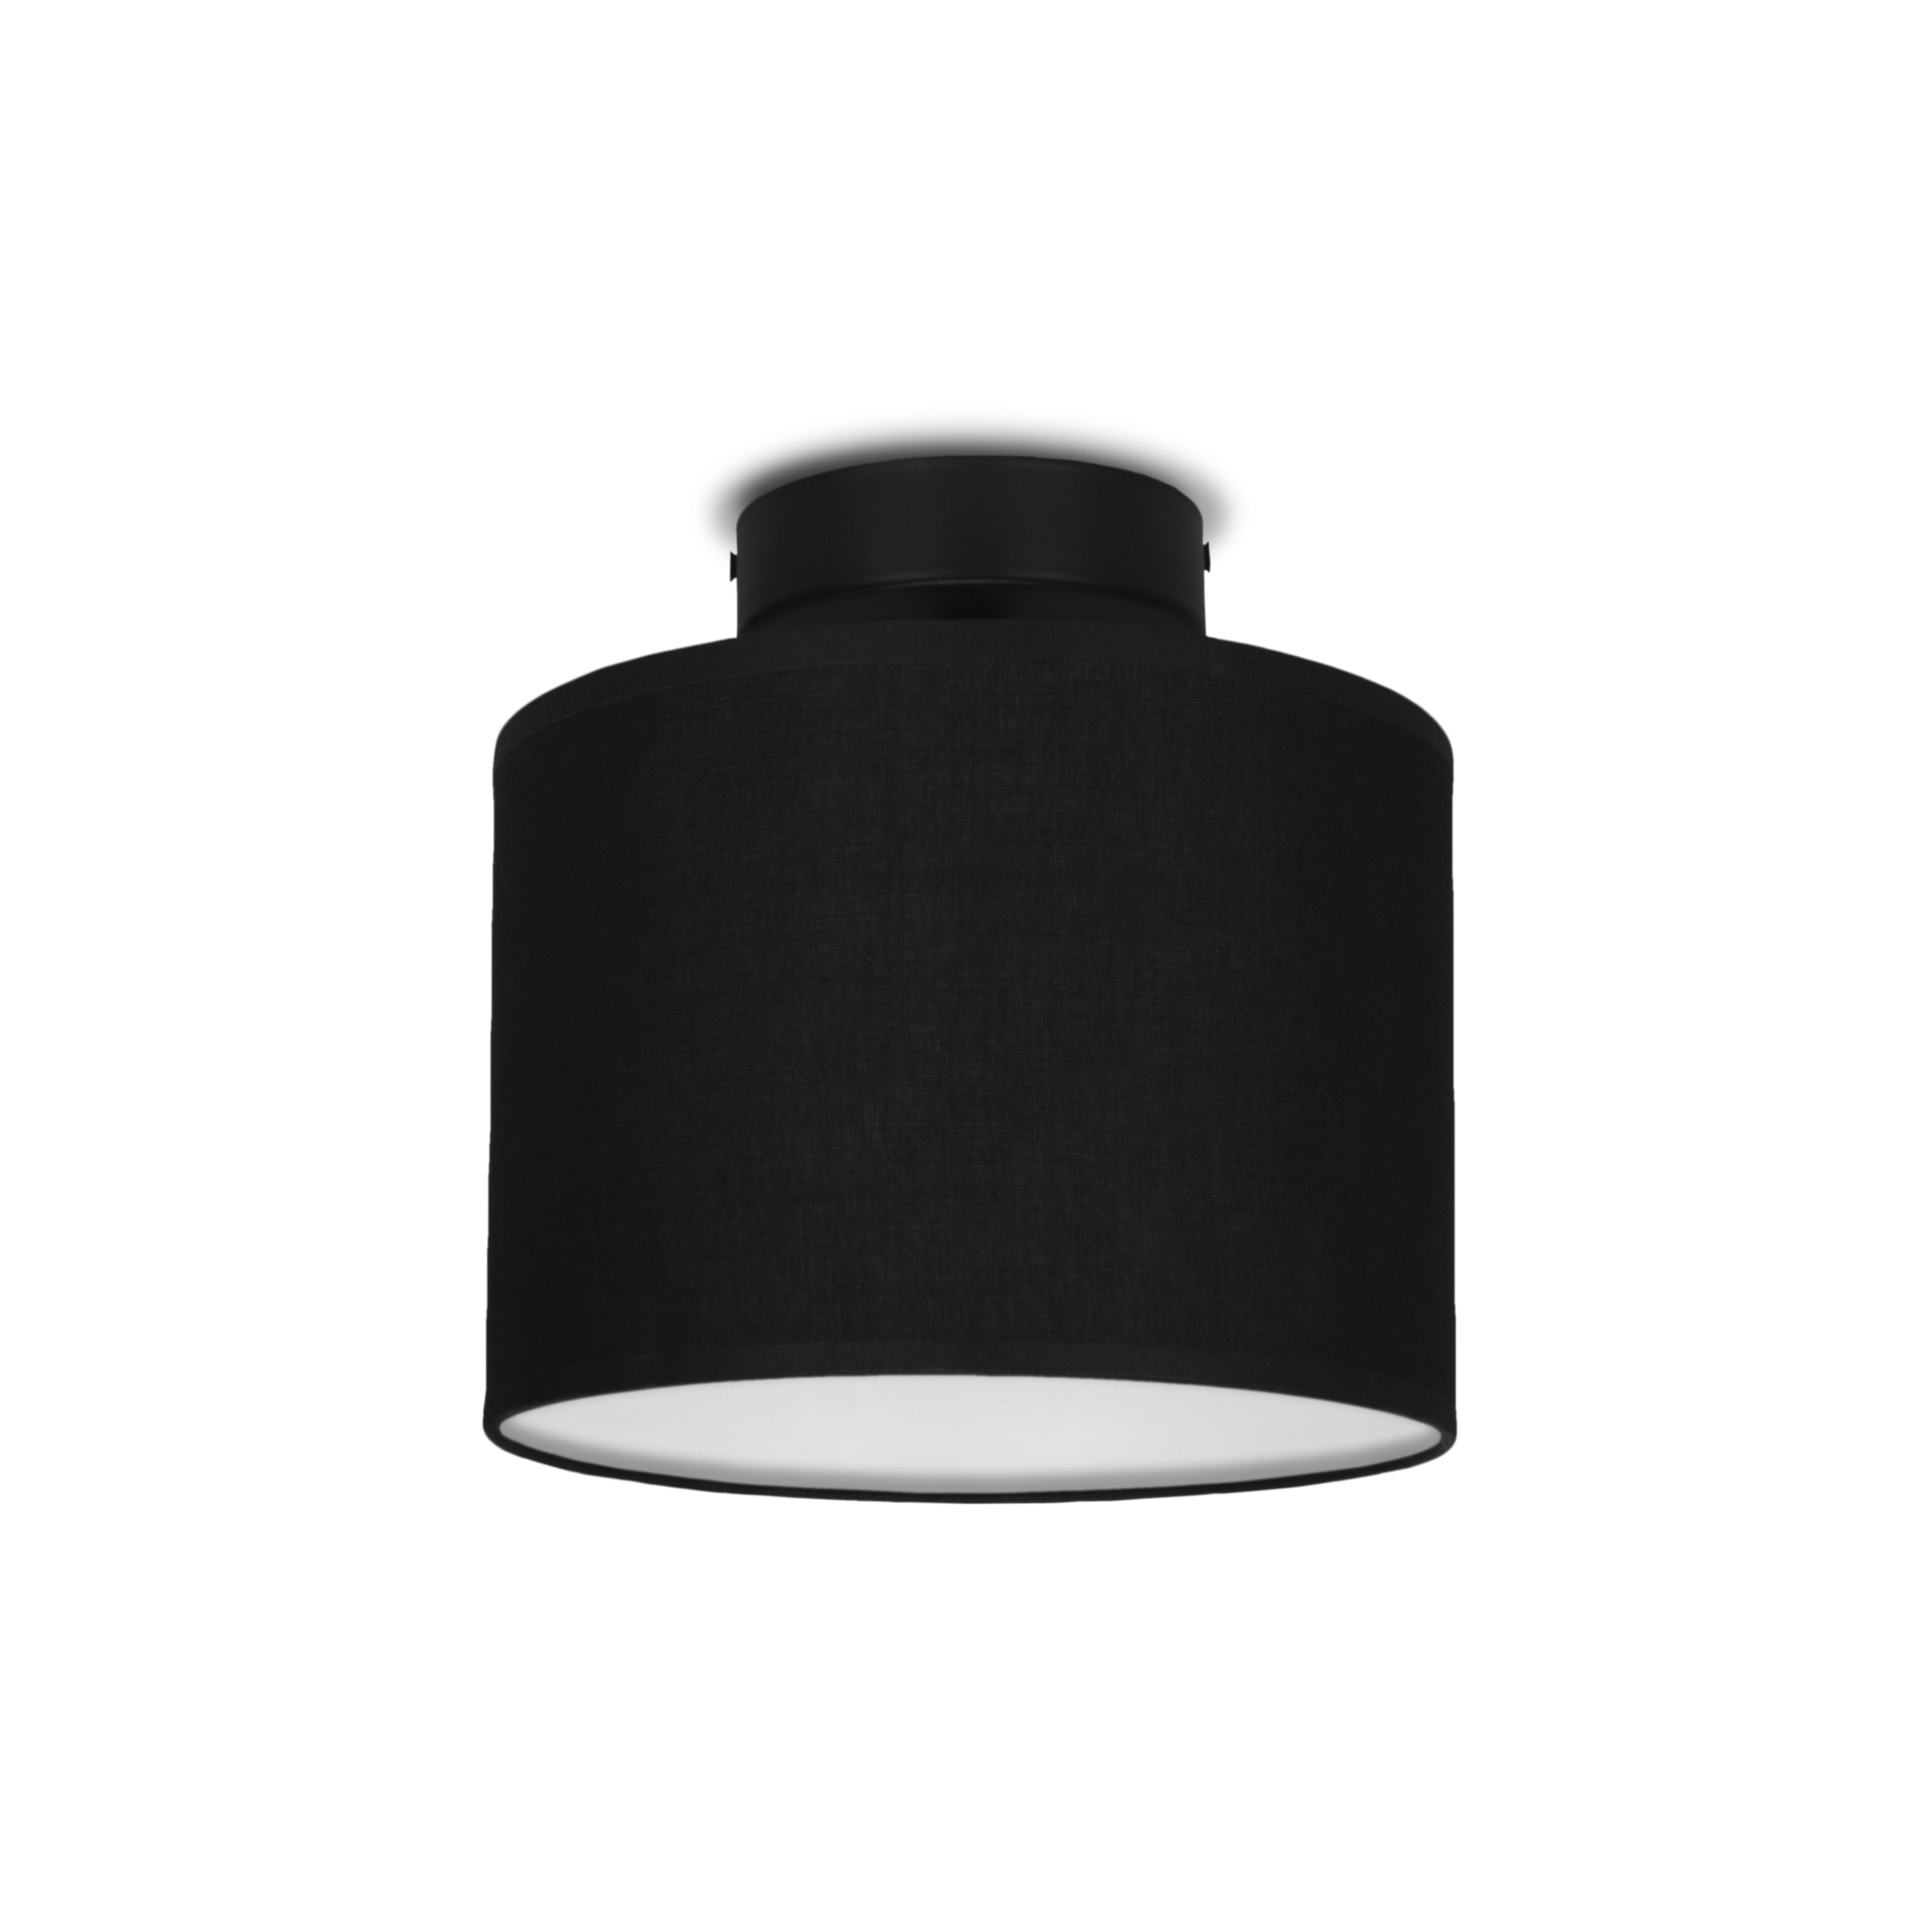 country listing in black plug farmhouse light fixture pendant hanging ceiling ceilings fullxfull il lamp unique